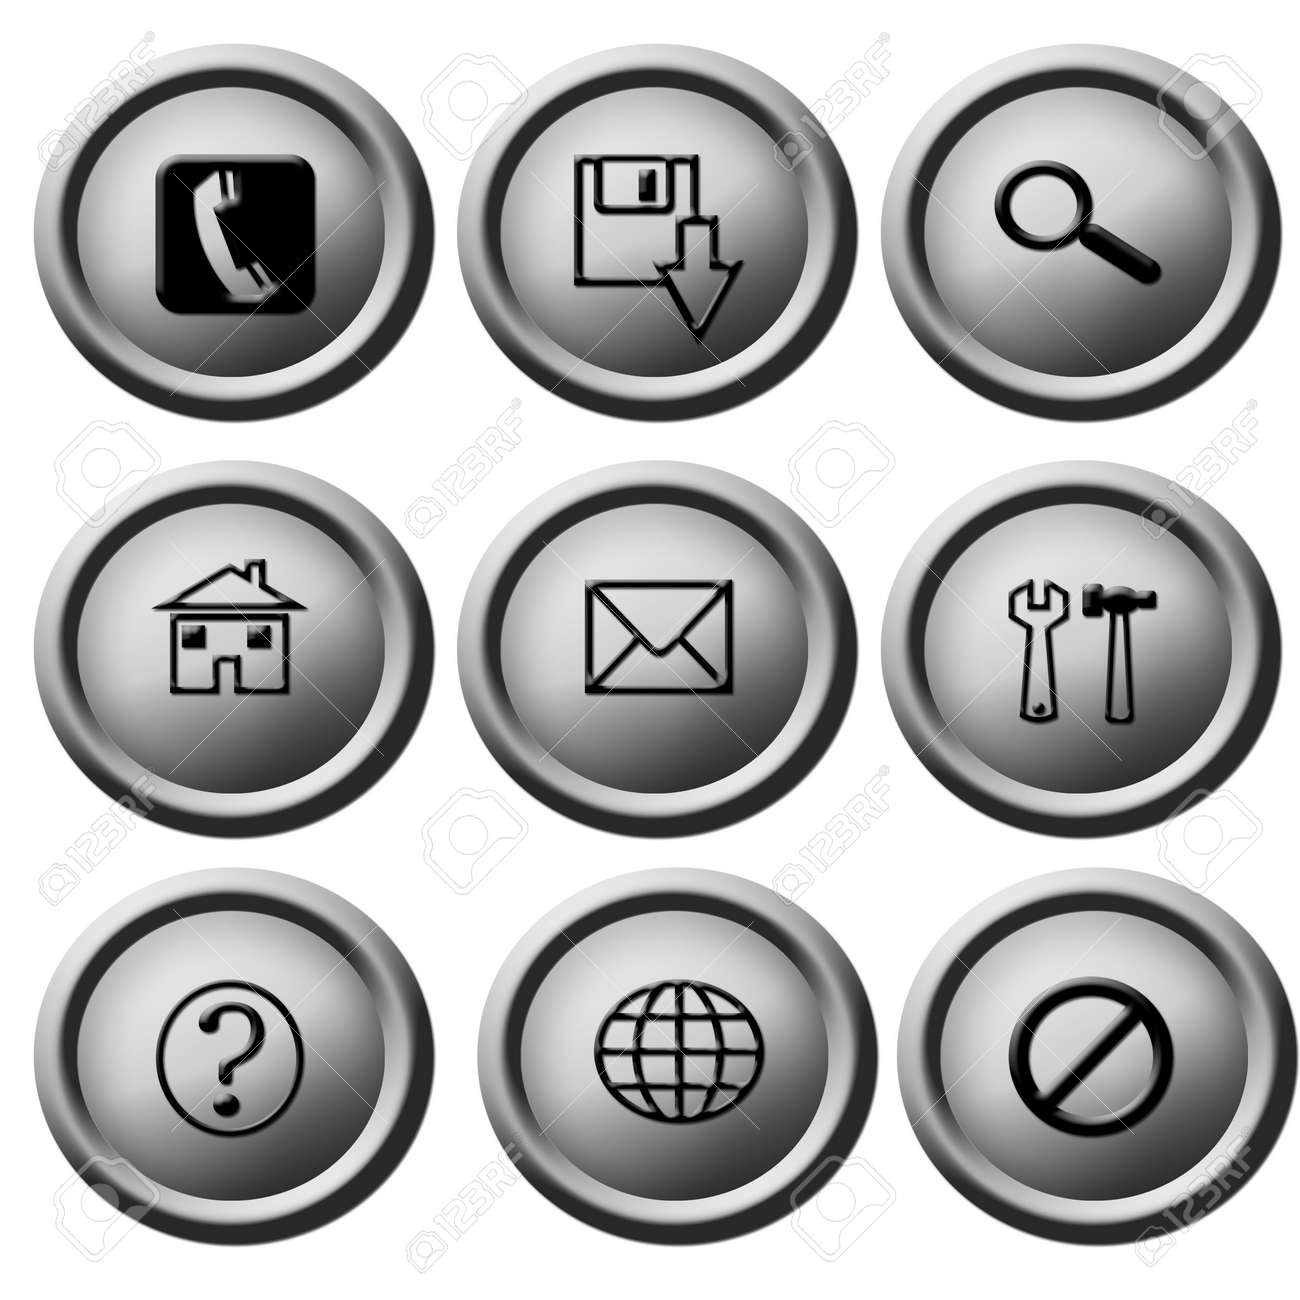 3d silver button pack Stock Photo - 19396440